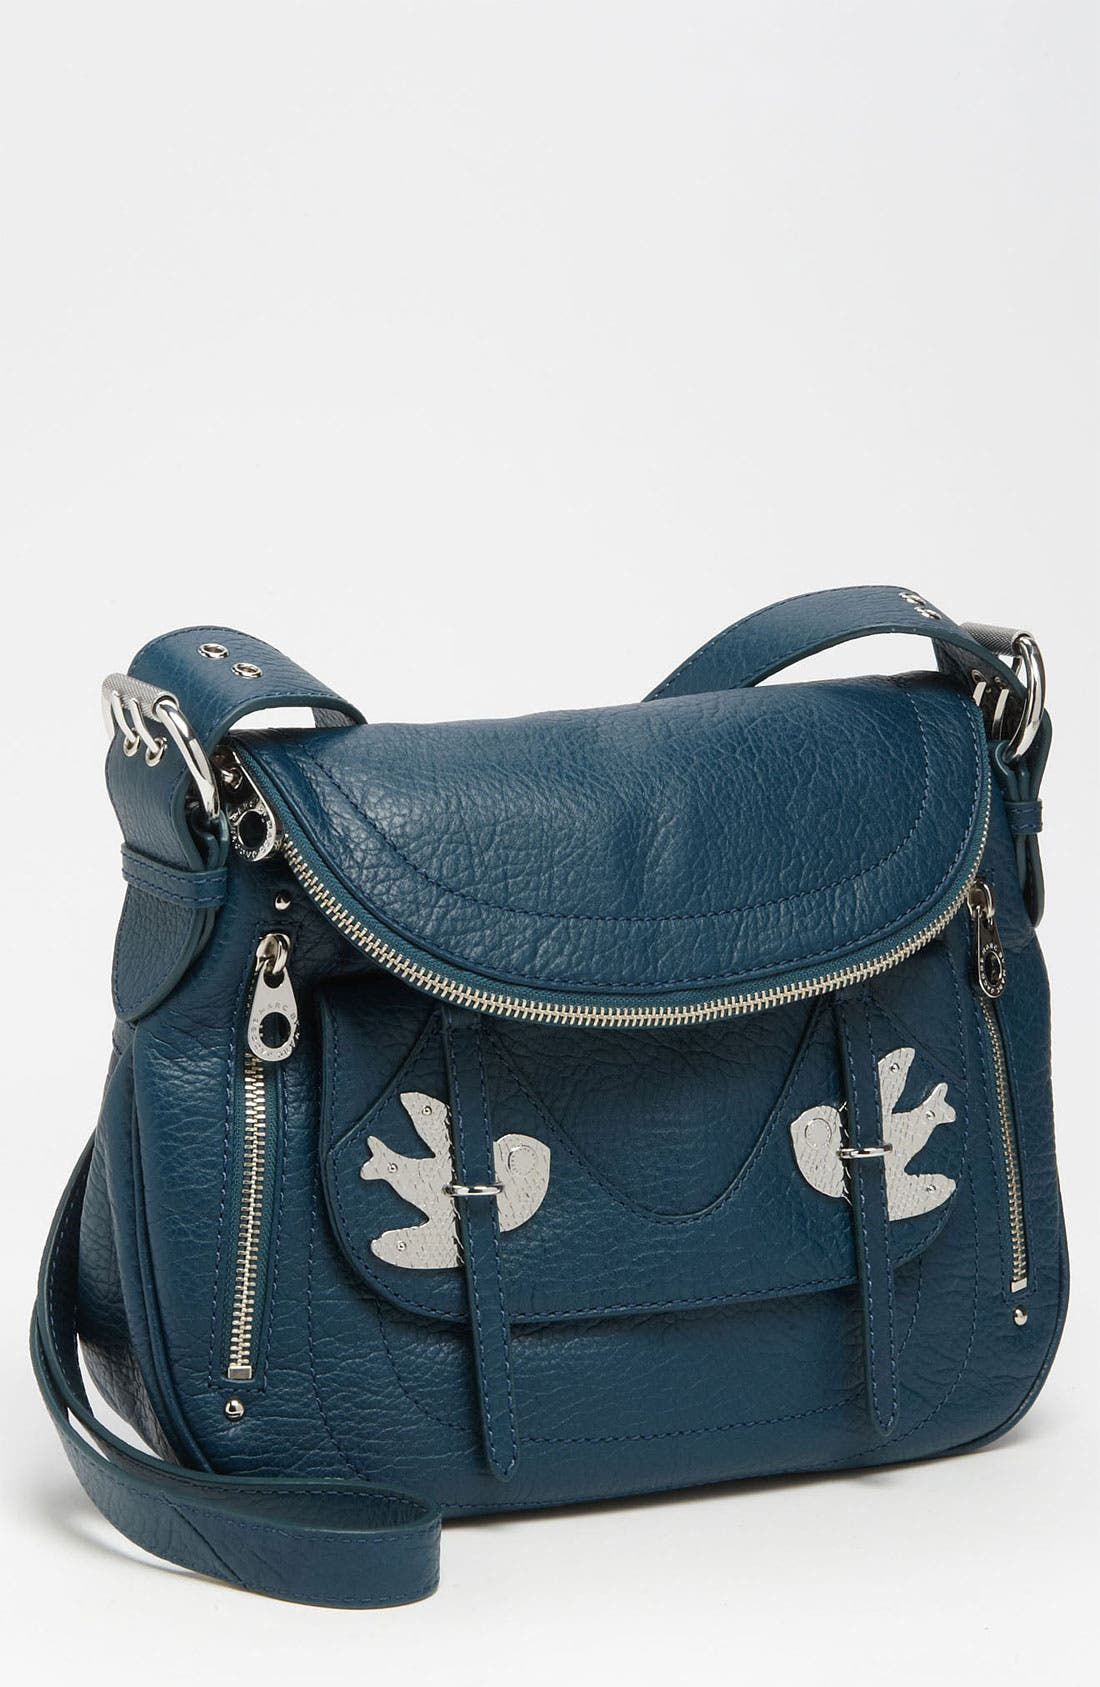 Main Image - MARC BY MARC JACOBS 'P2M Natasha' Crossbody Bag